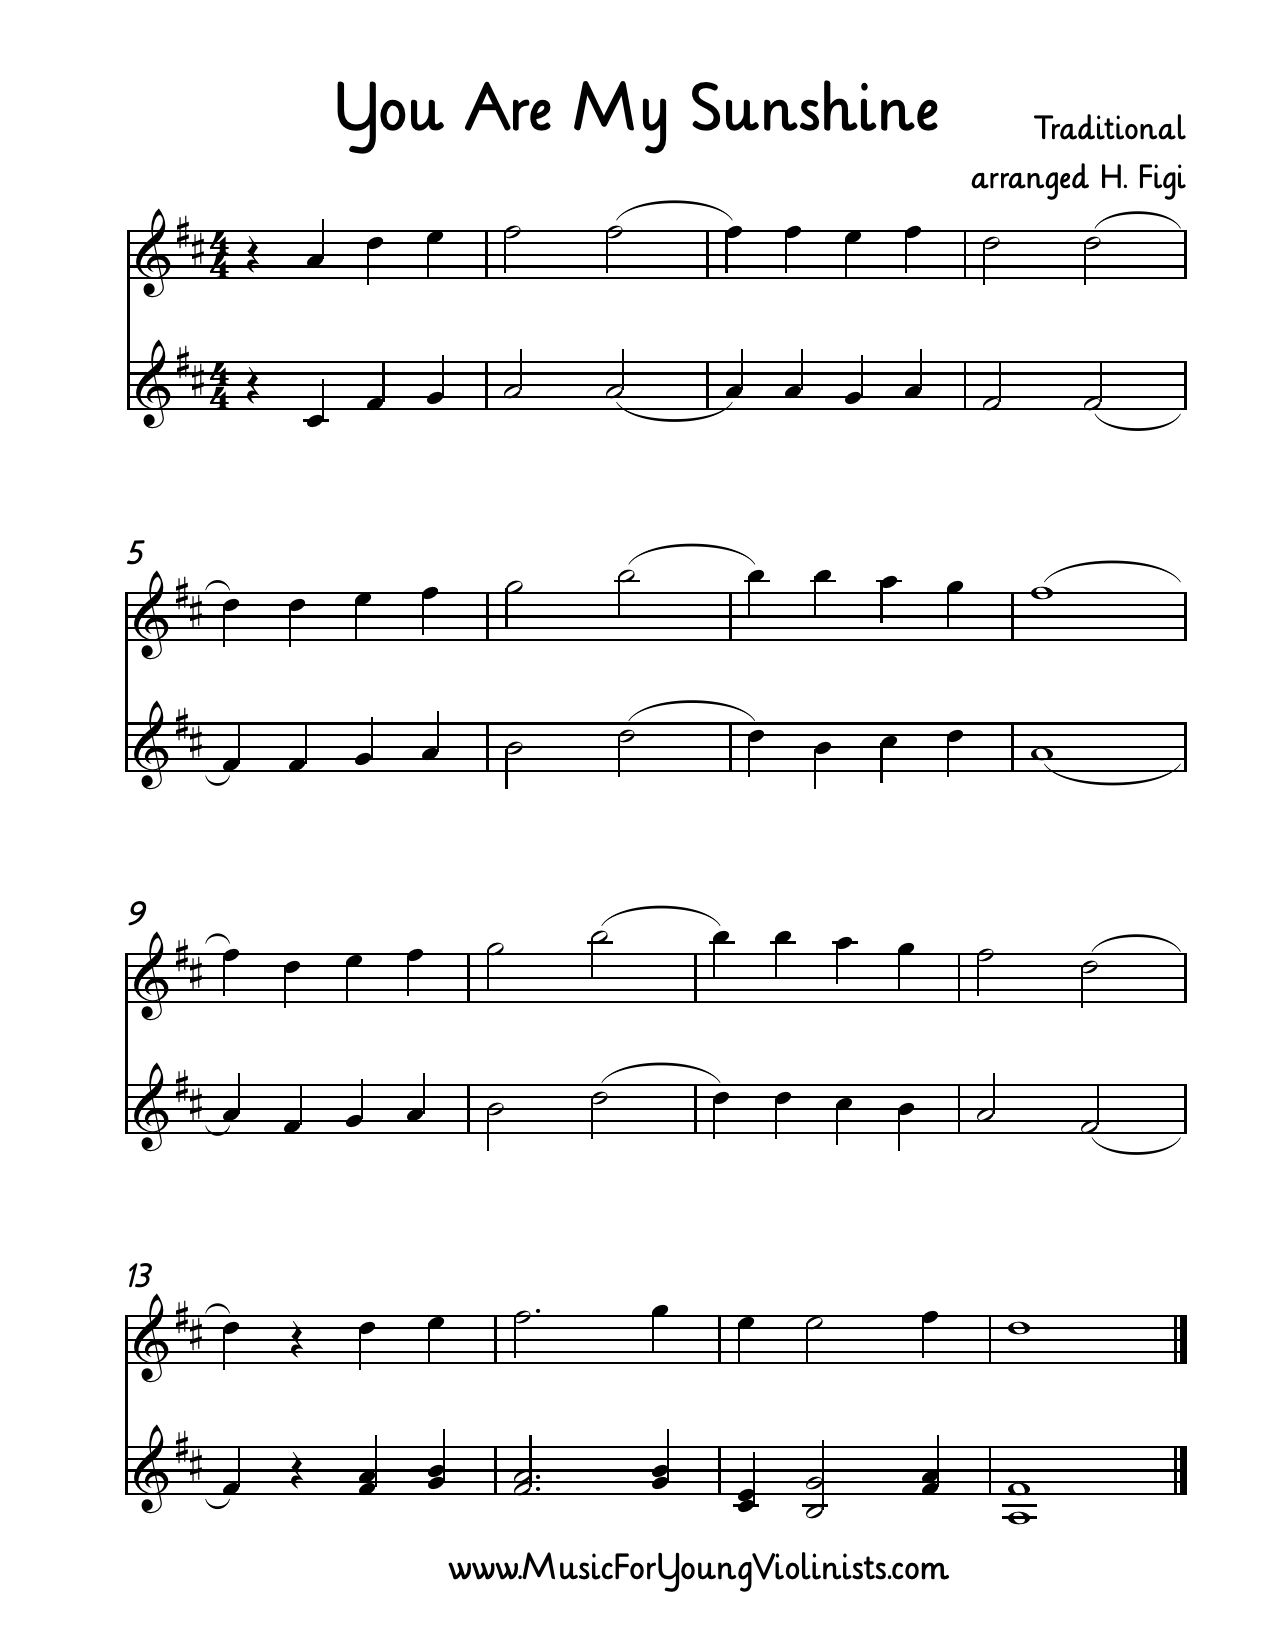 Violin Sheet Music: You Are My Sunshine arranged for 2 Violins by Heather Figi. My friends Ryan and Jenny had me play this at their wedding when their beautiful daughter walked down the aisle as the flower girl. Happy Music Making! Please visit www.MusicForYoungViolinists.com for more free resources.